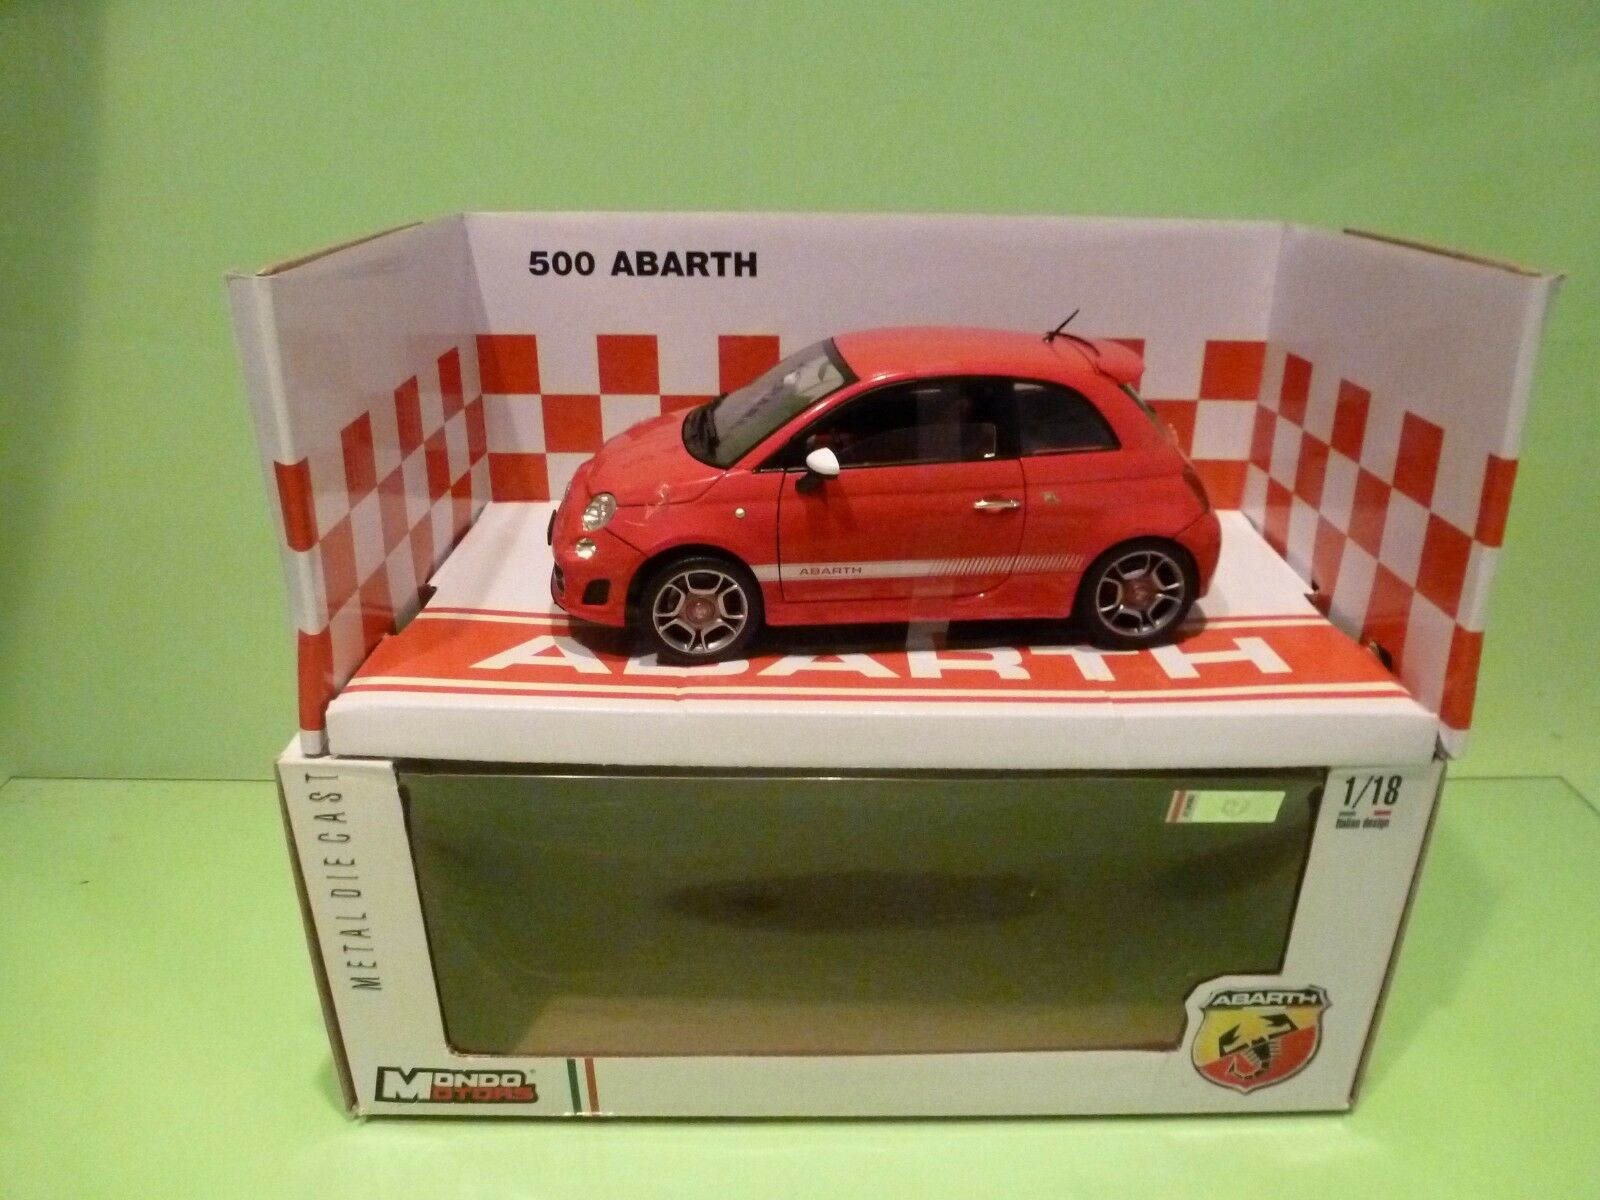 MONDO MOTORS ZT24767 ( FIAT ) ABARTH 500 -  rot 1 18 - NEAR MINT IN BOX